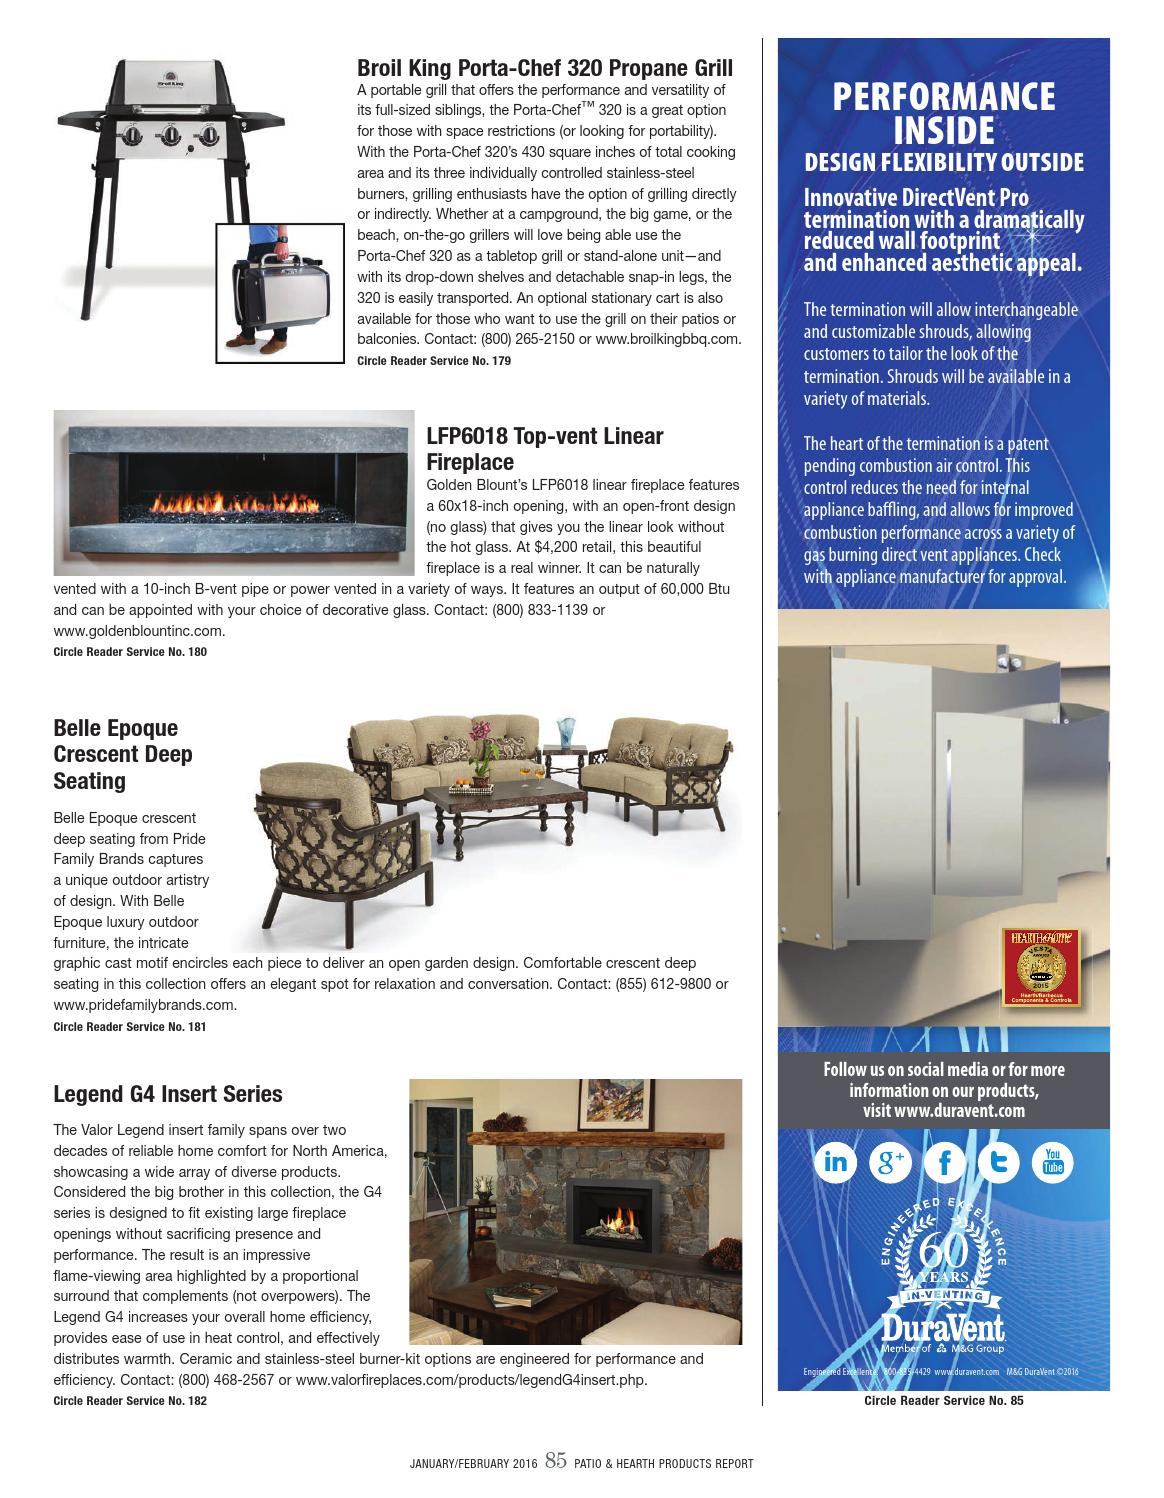 Swell Patio Hearth Product Report January February 2016 By Download Free Architecture Designs Salvmadebymaigaardcom